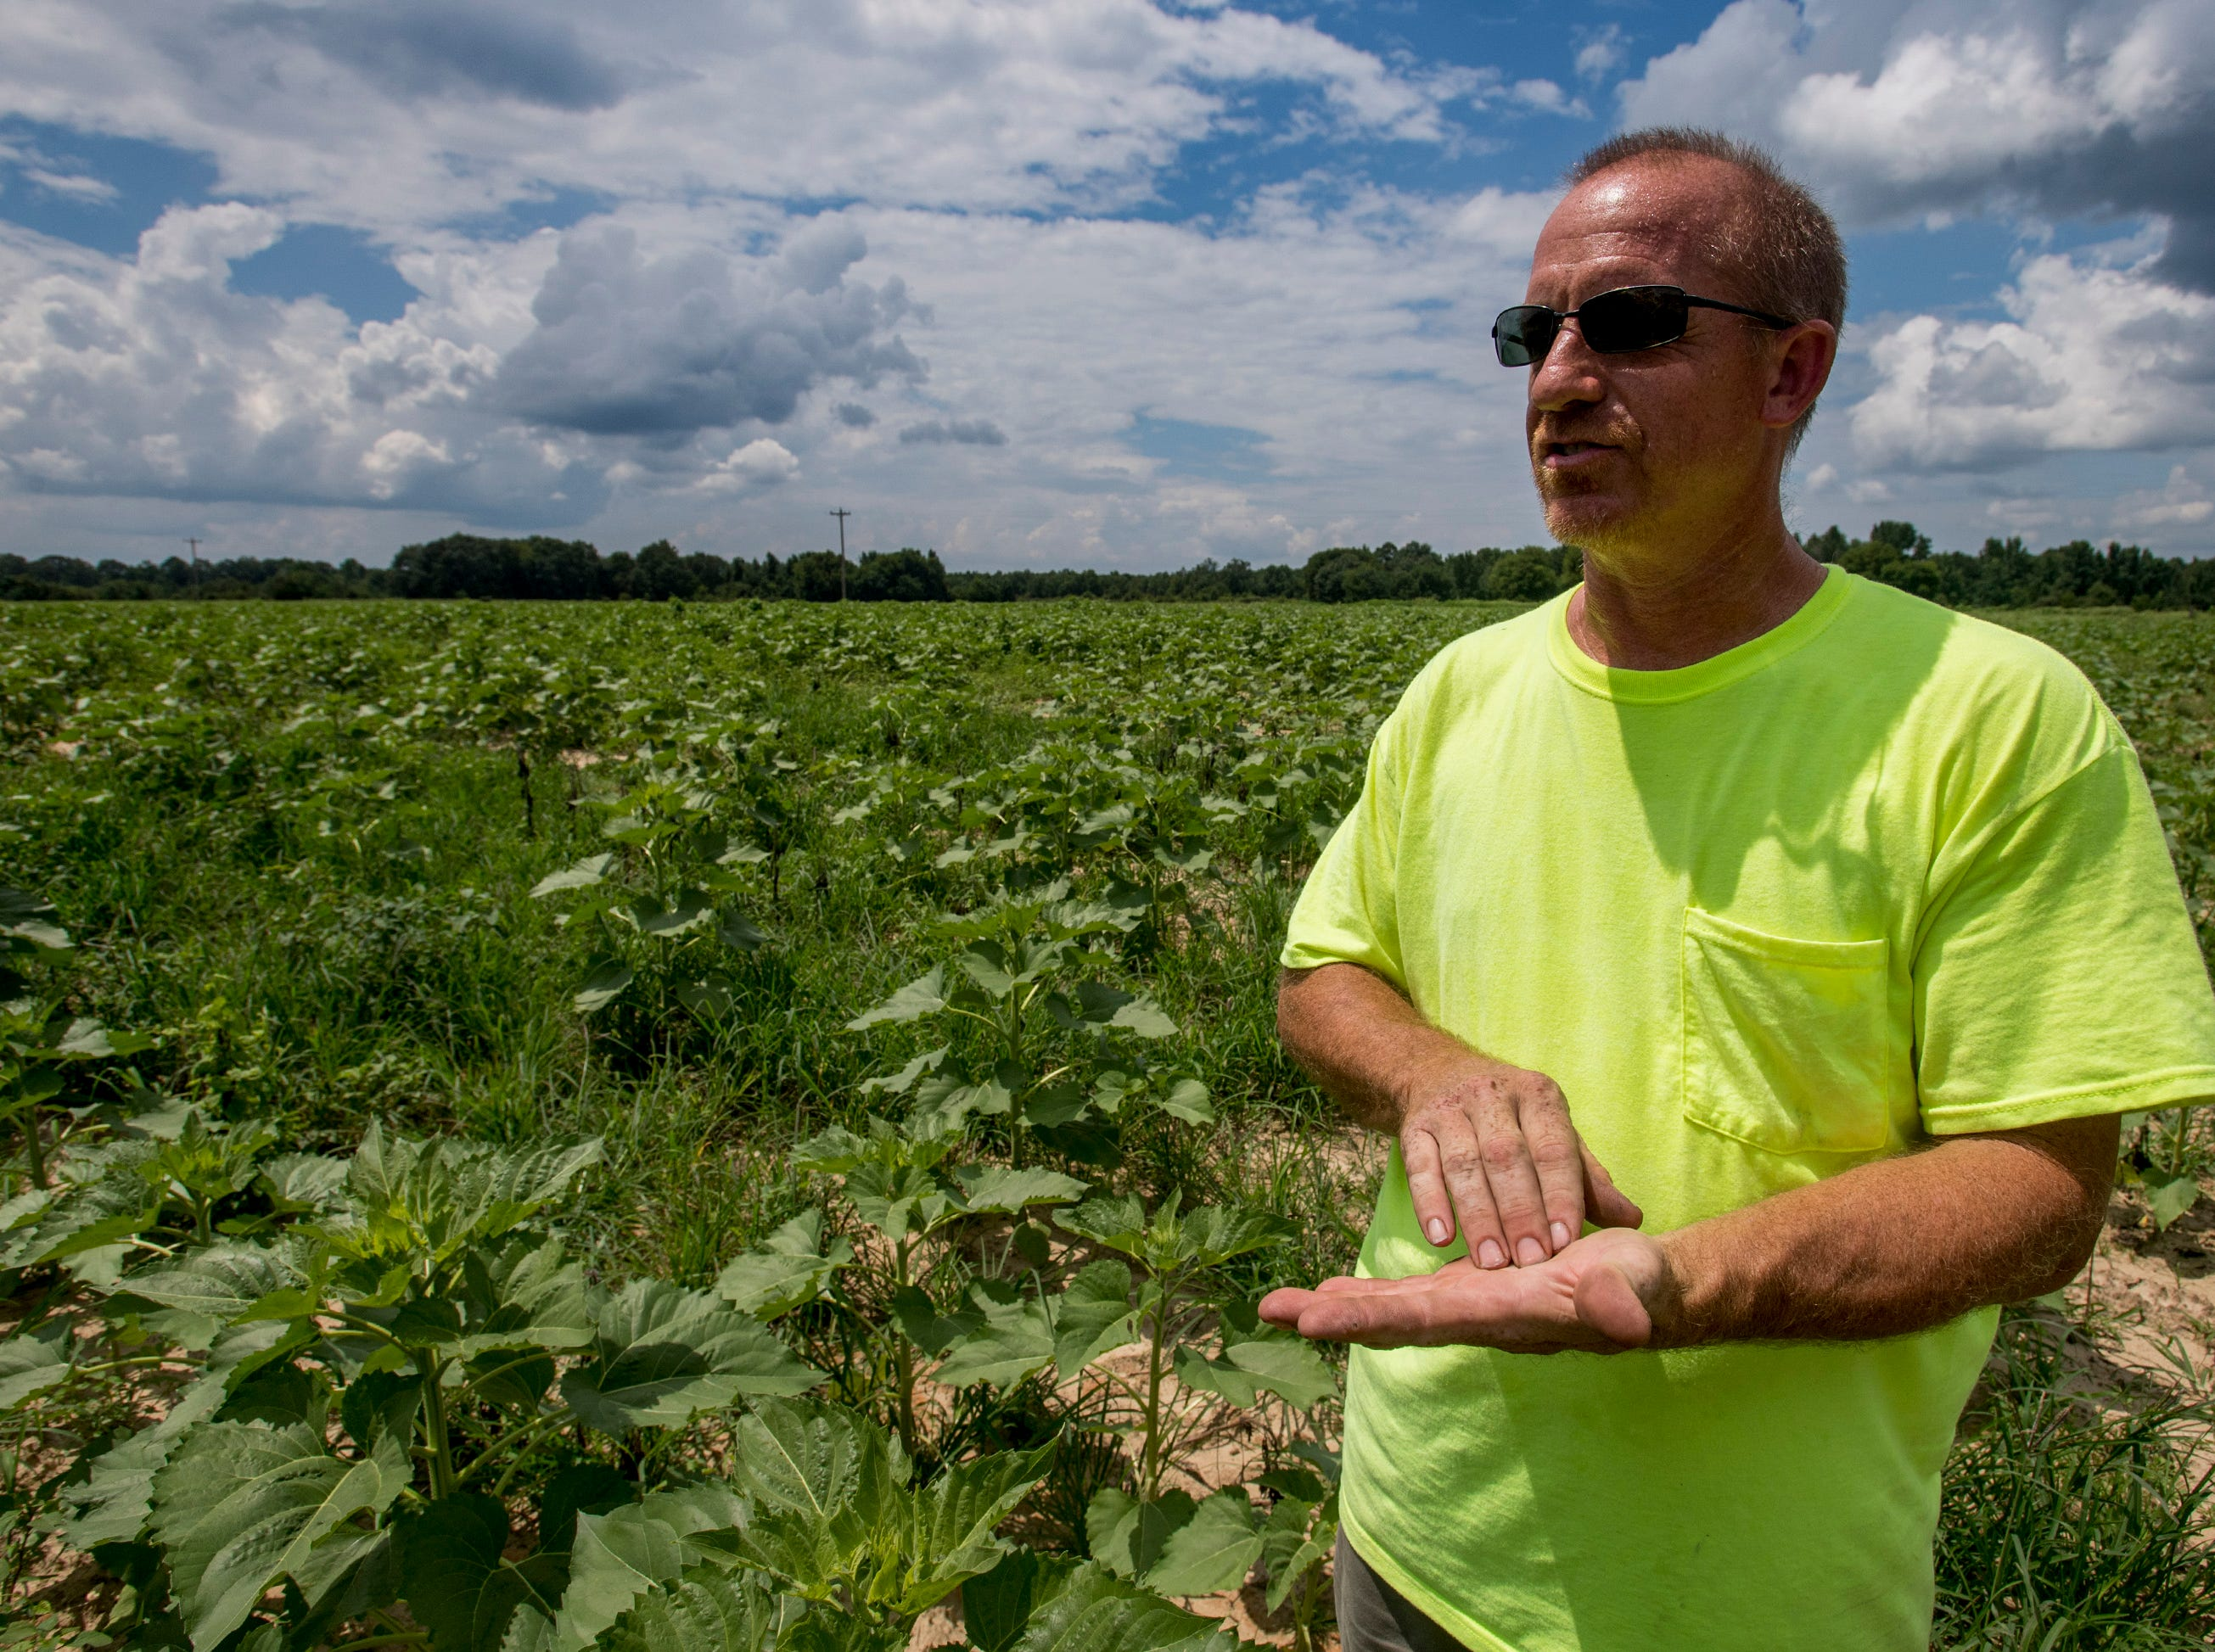 Todd Sheridan stands in his sunflower field near Autaugaville, Ala., on Tuesday, July 24, 2018. Sheridan had to replant the popular field, so it is not expected to bloom until August.